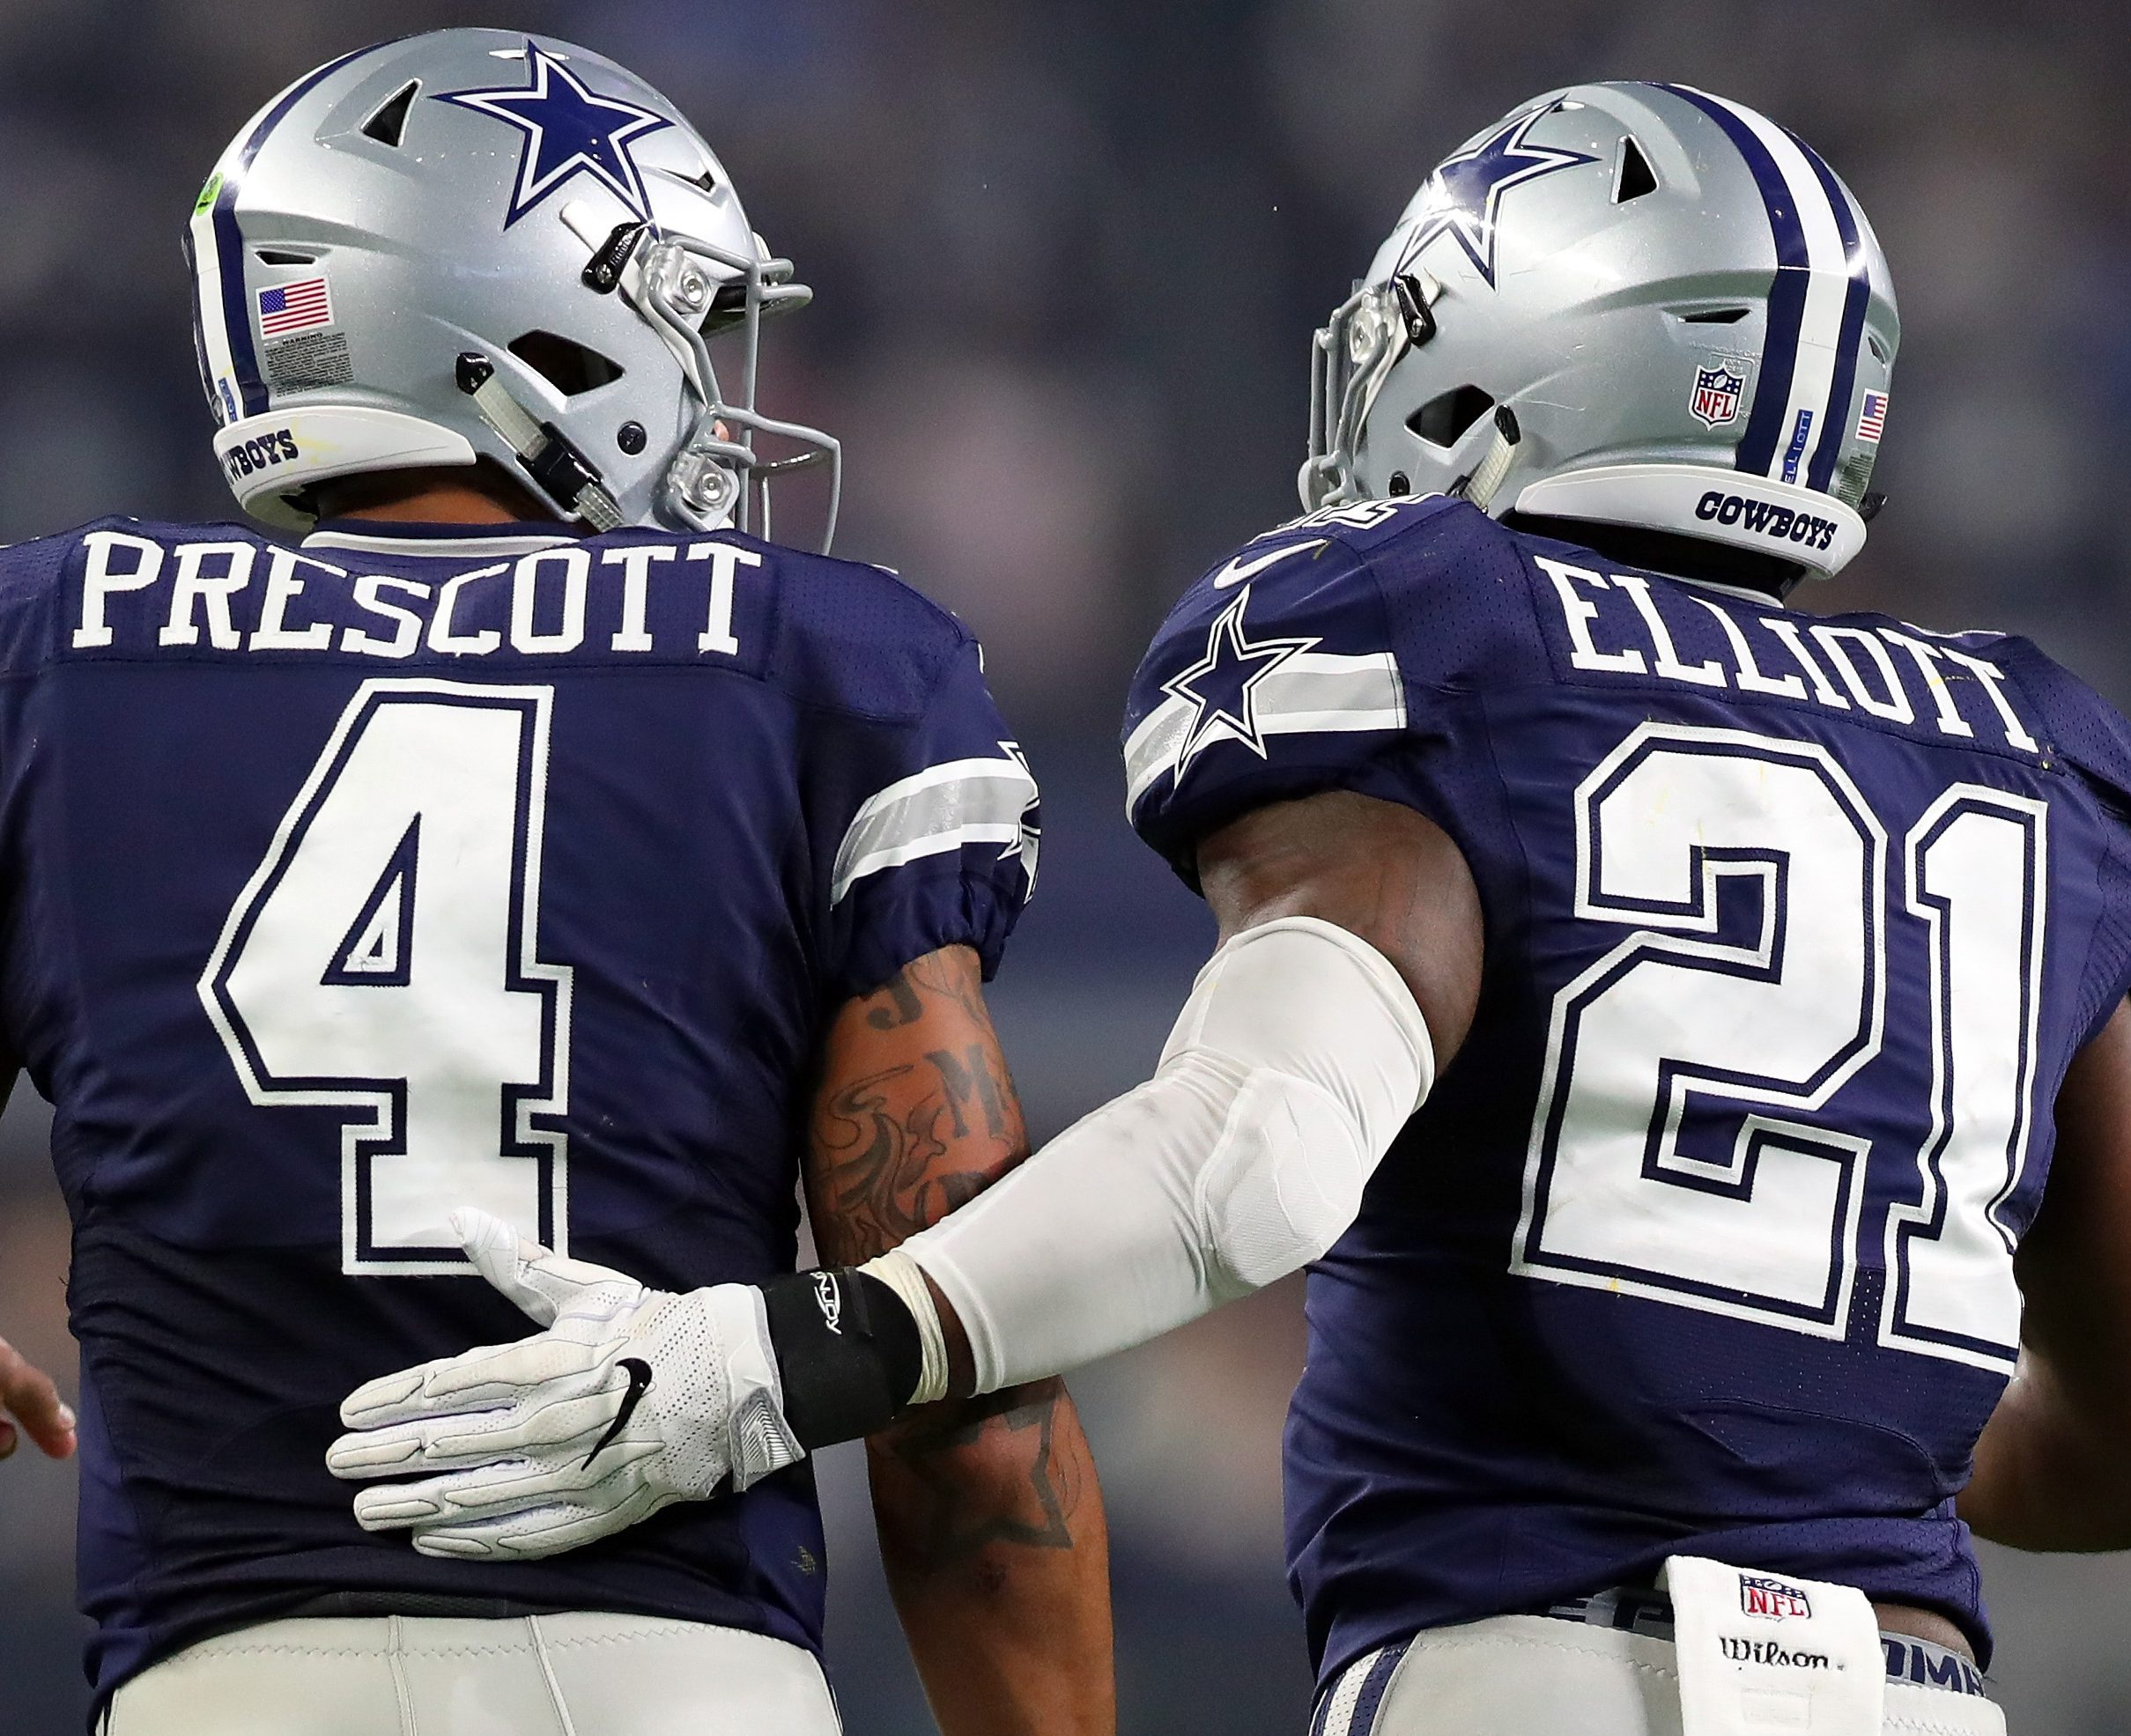 Four Cowboys jerseys among the top 10 sellers for 2016 ...